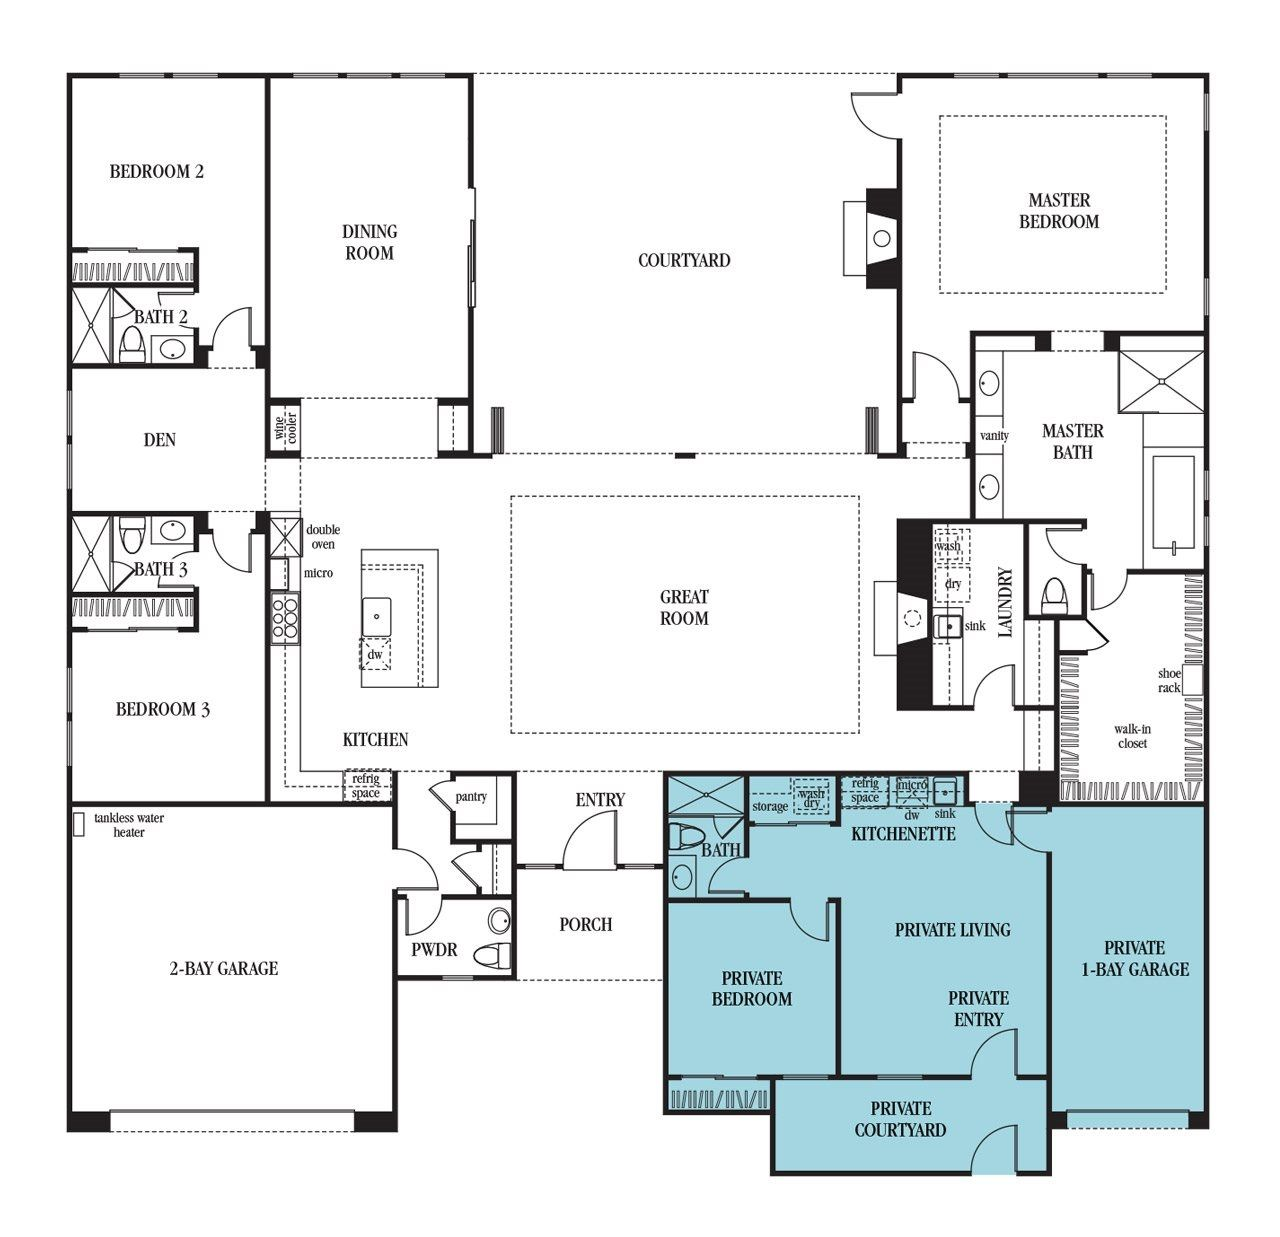 Next Generation Homes Floor Plans Multigenerational House Plans Multigenerational House New House Plans